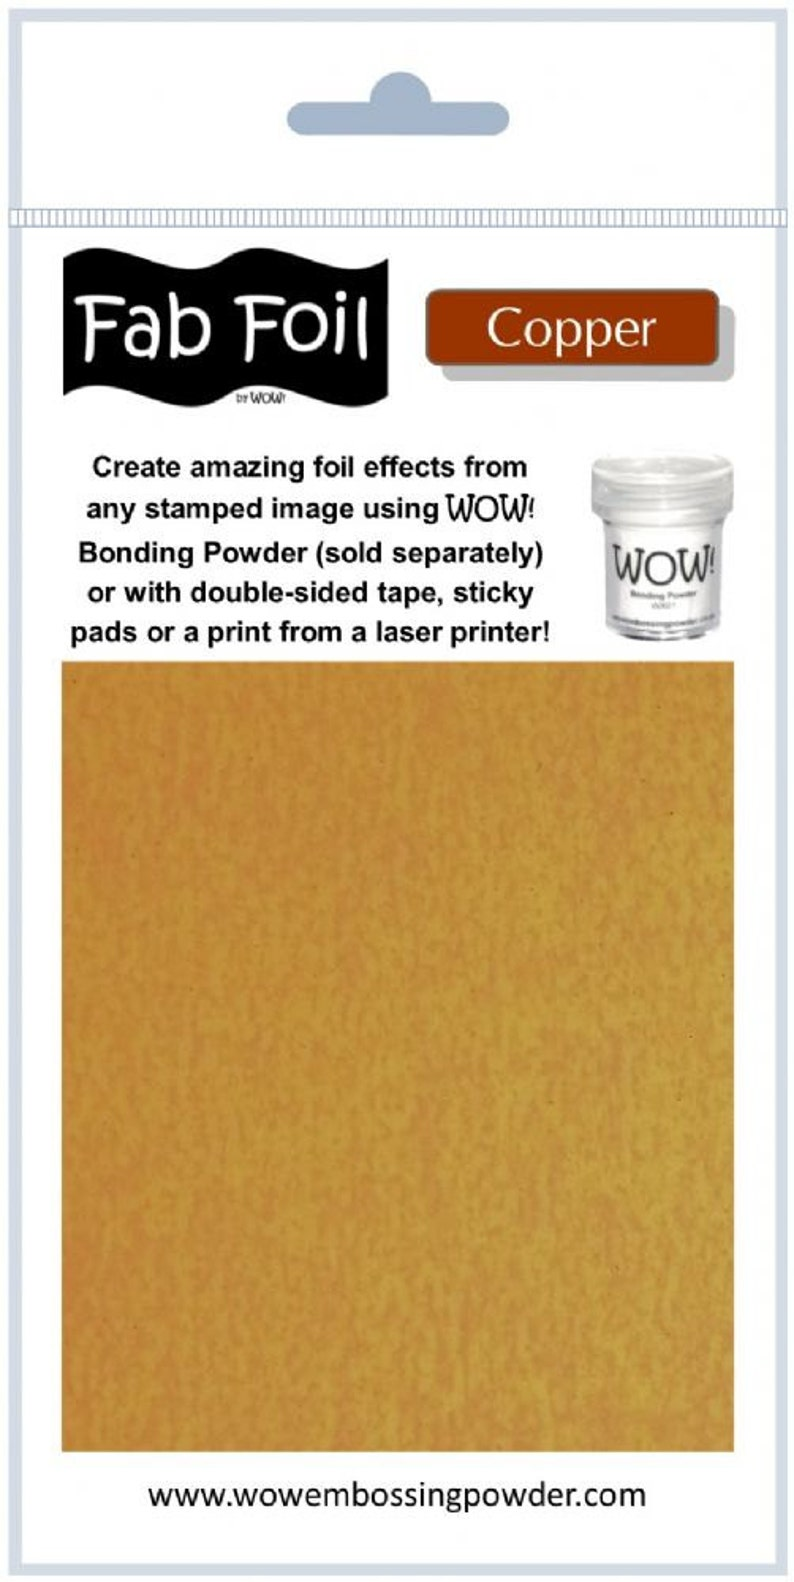 Wow Fab Foil Copper Embossing Foil, Jewelry making, Paper crafting